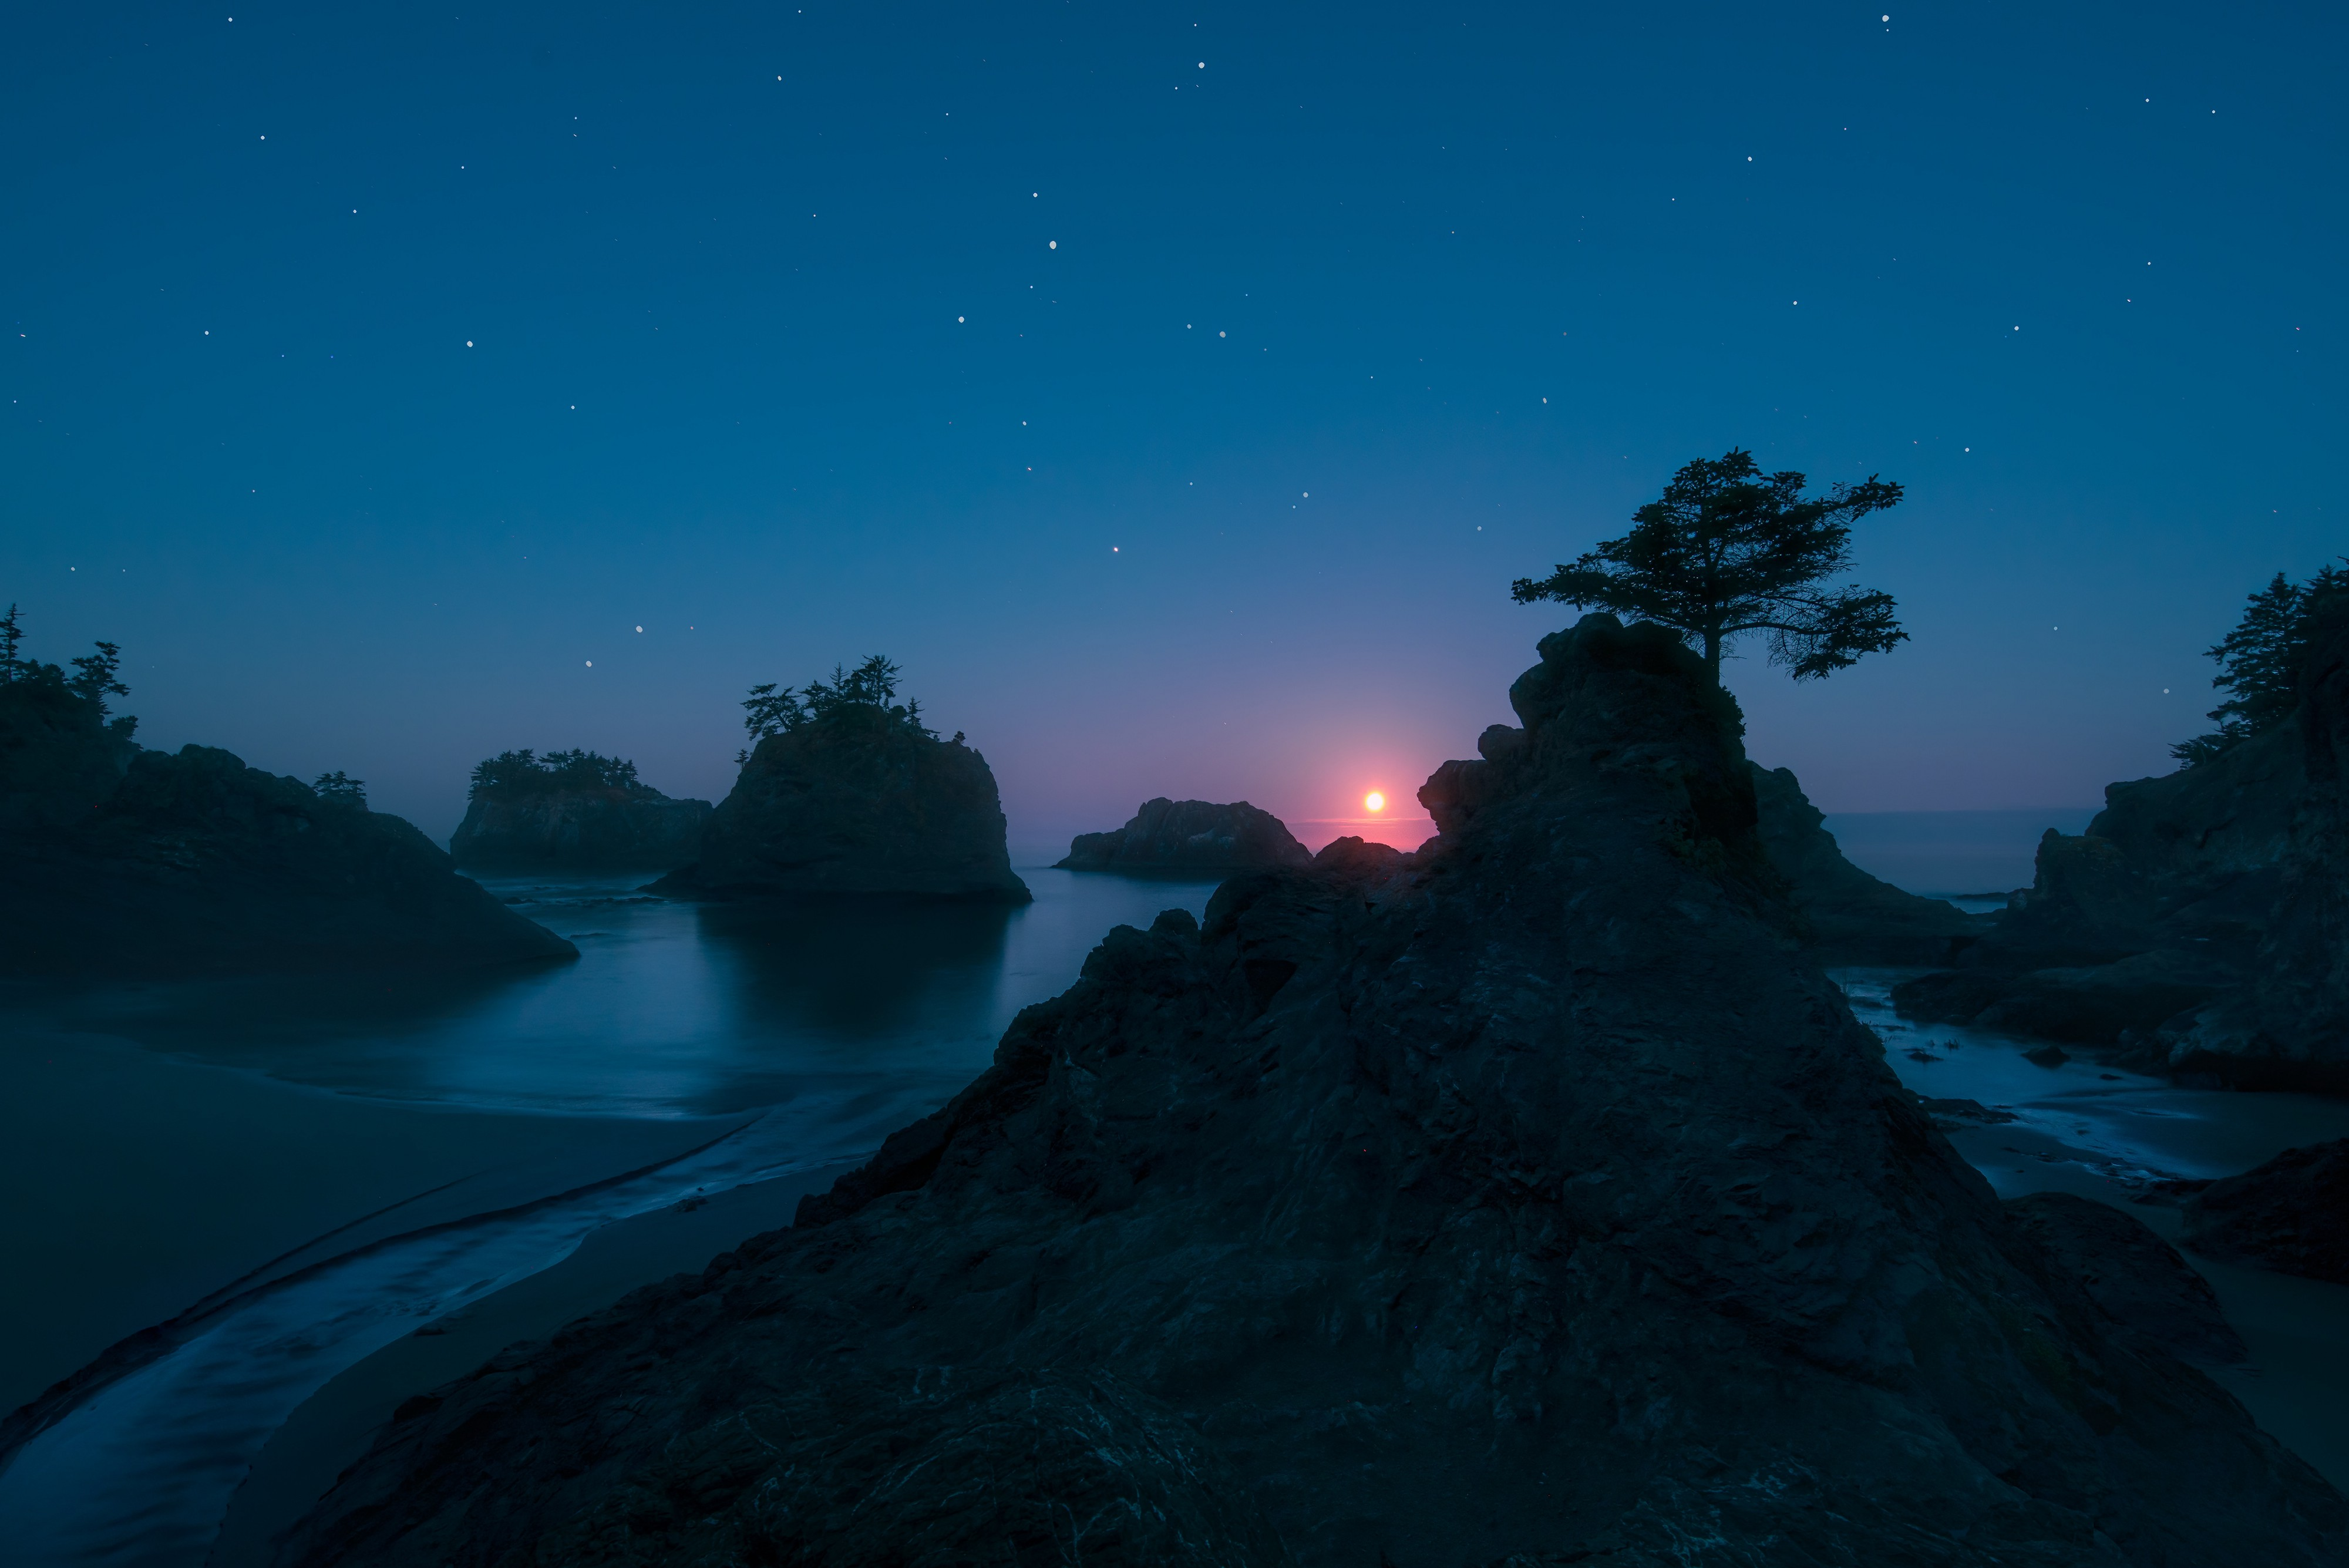 Fine art photograph of a pink moon peeking out over rock structures, trees, and water, all in deep blue